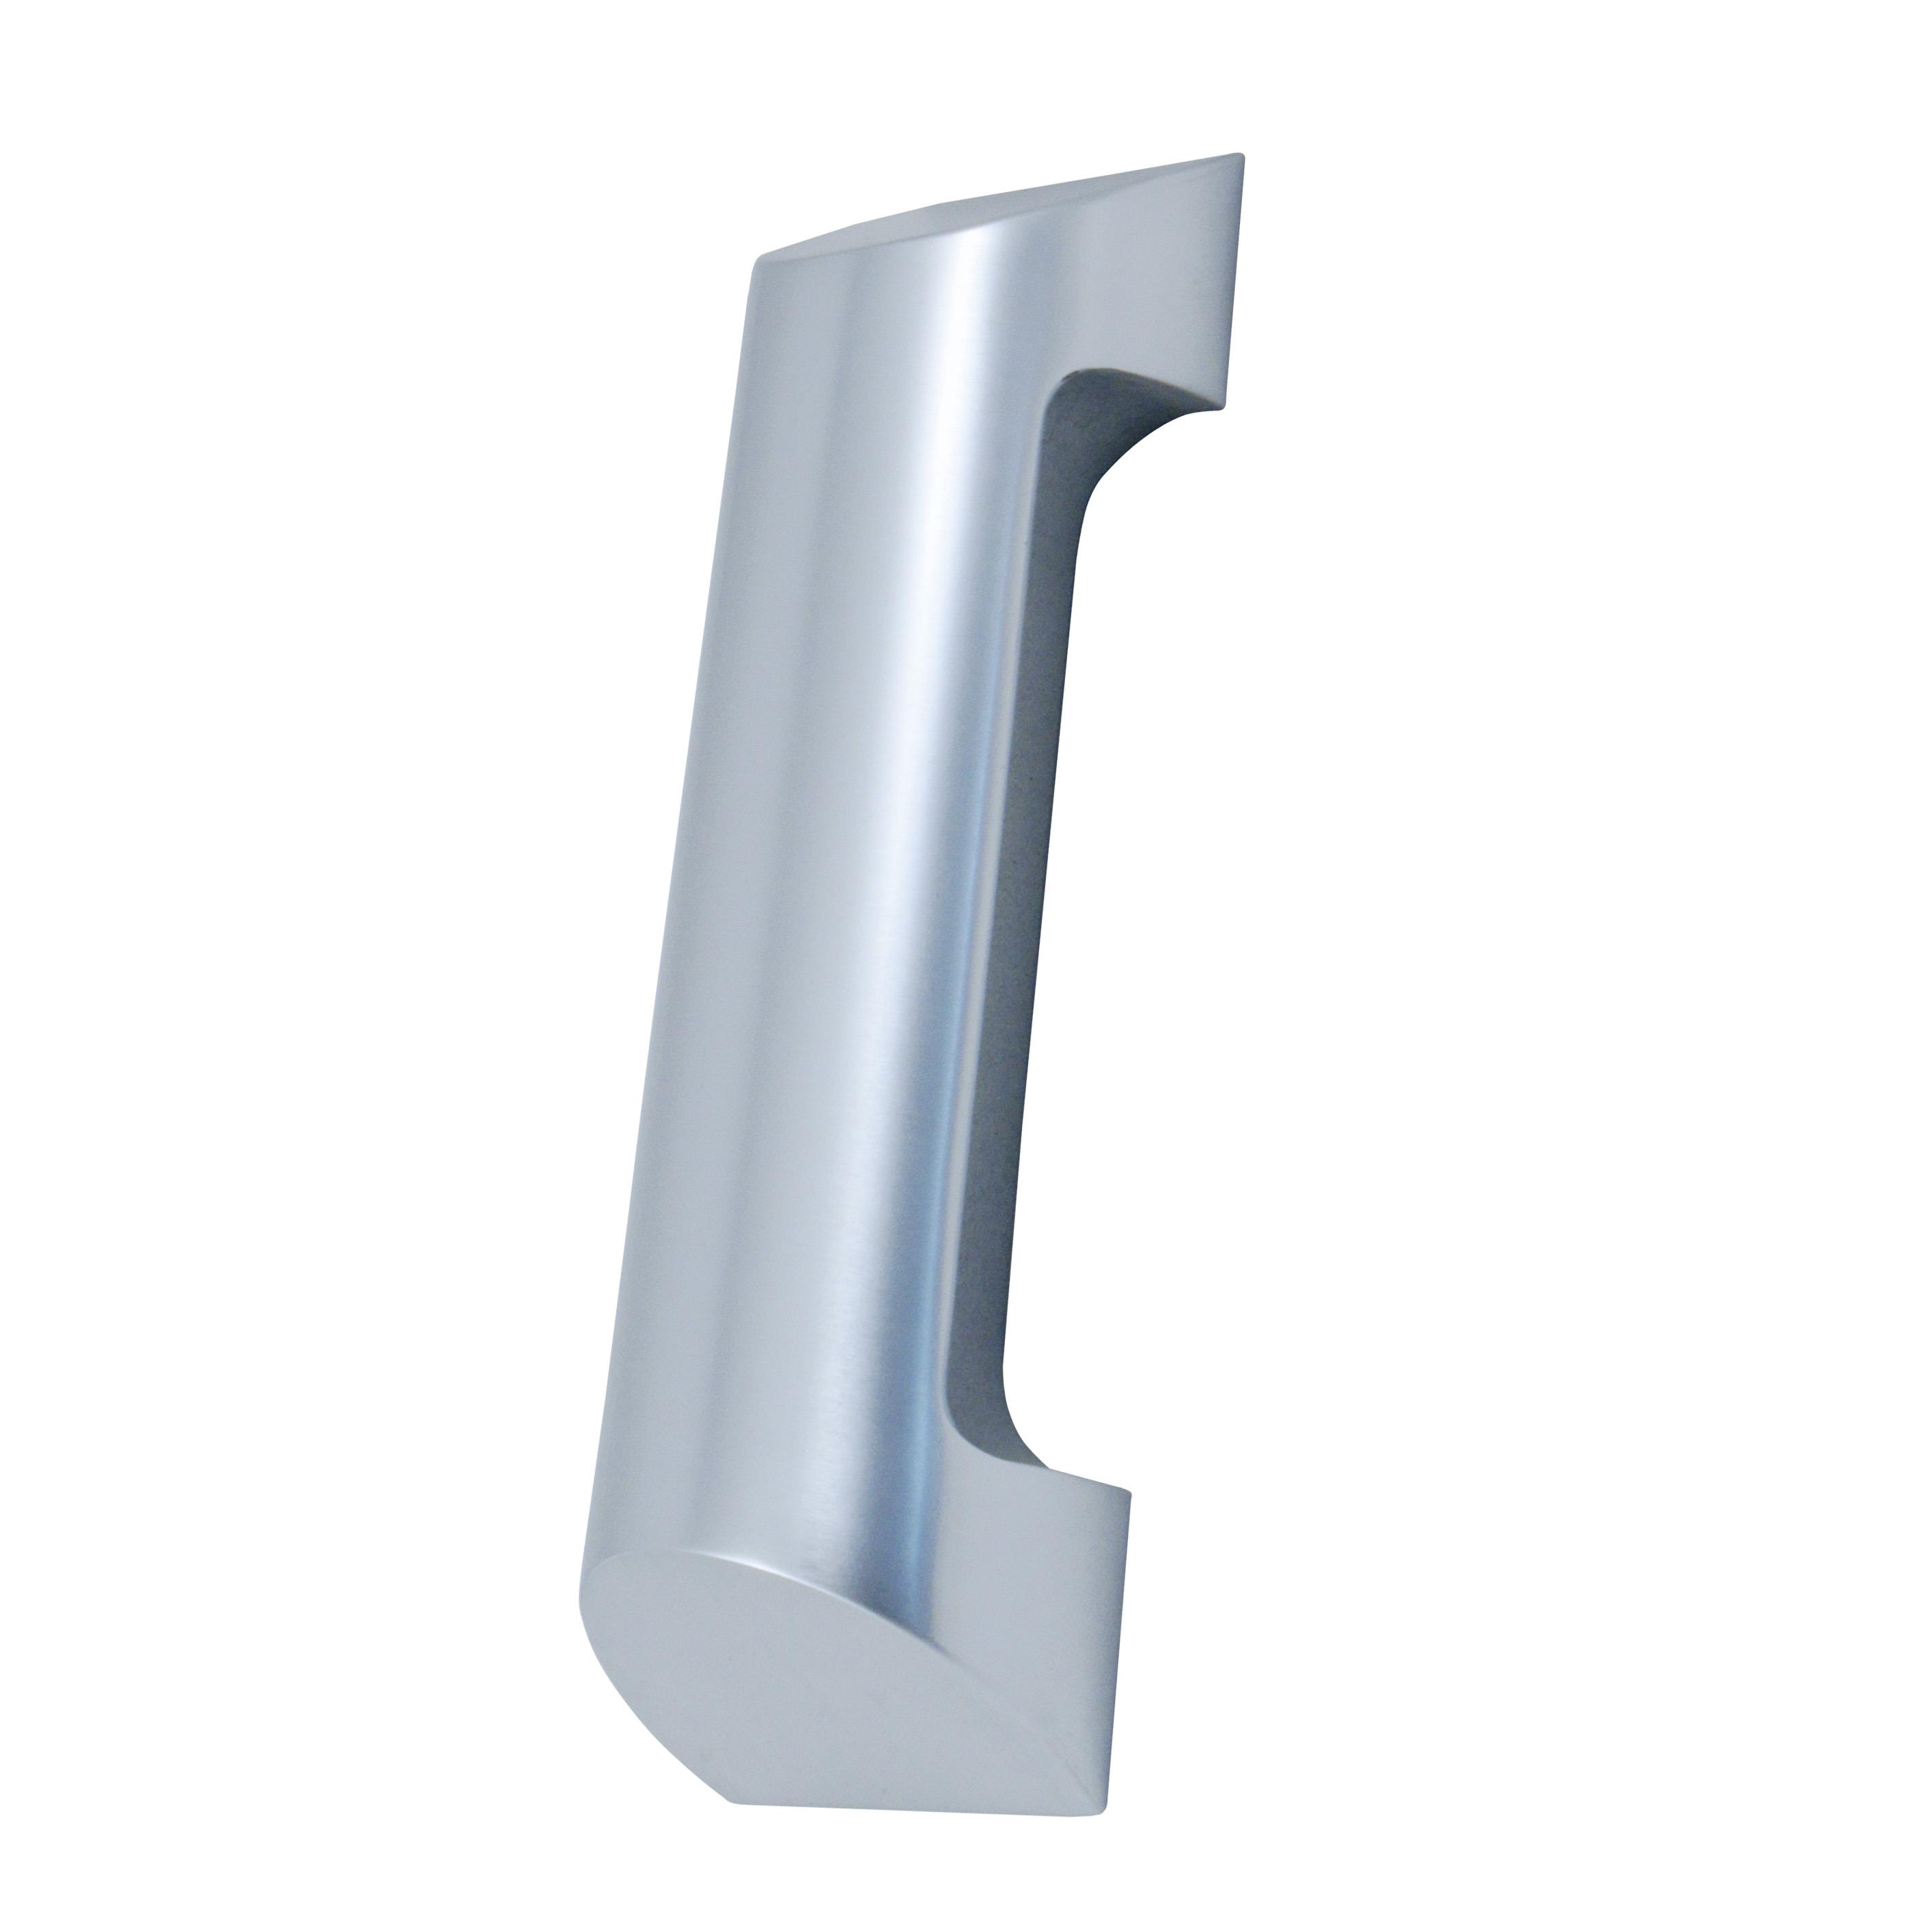 ALPHLAR - Anti-Ligature Pull Handle